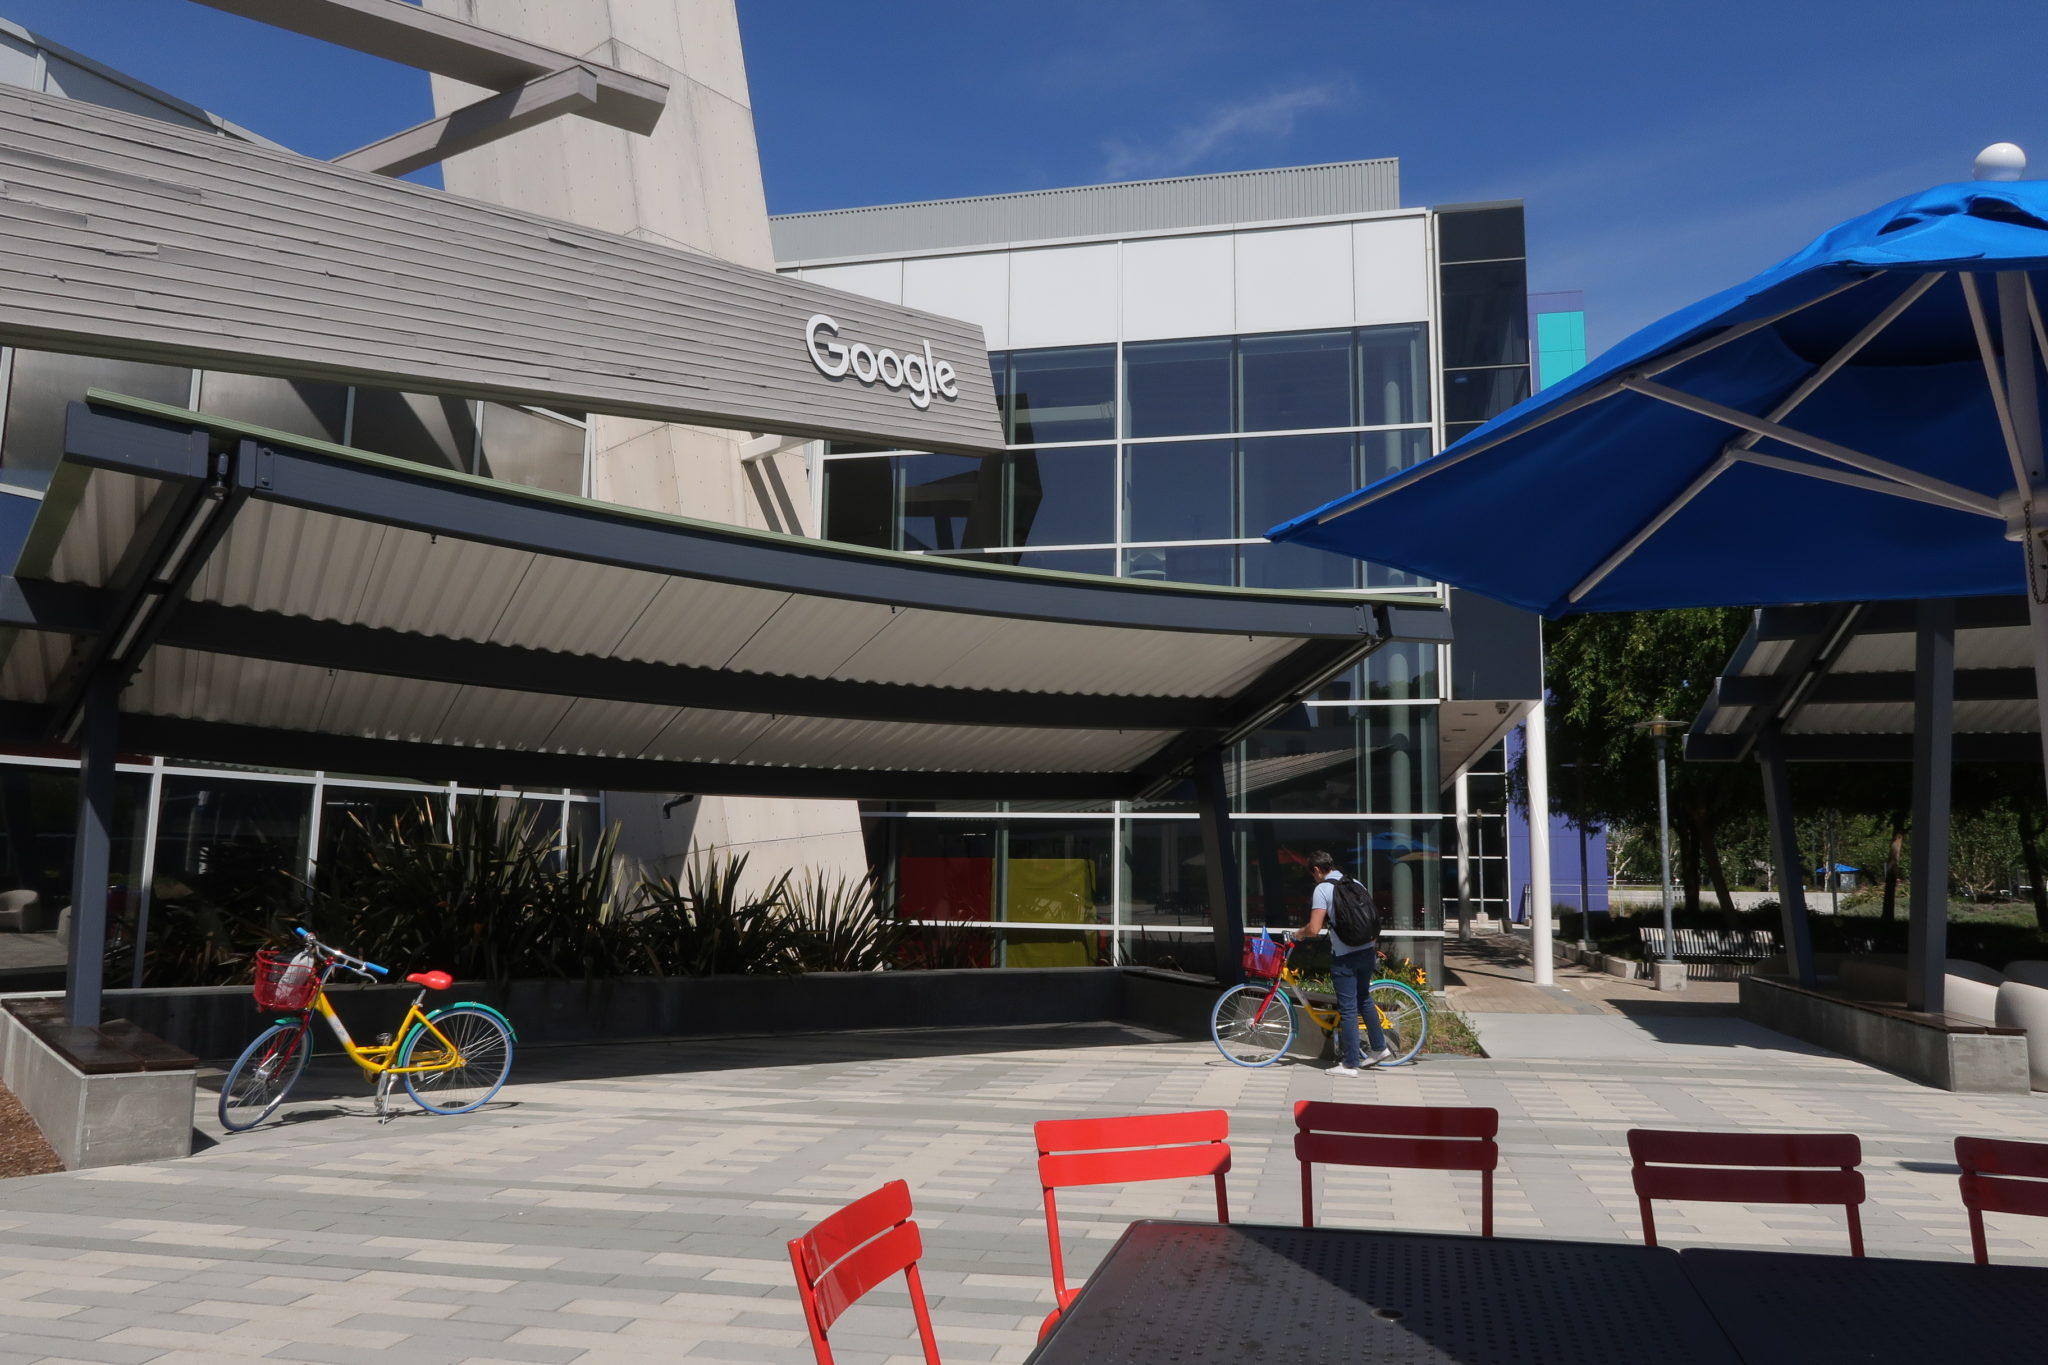 Complejo de Google en Silicon Valley, California.